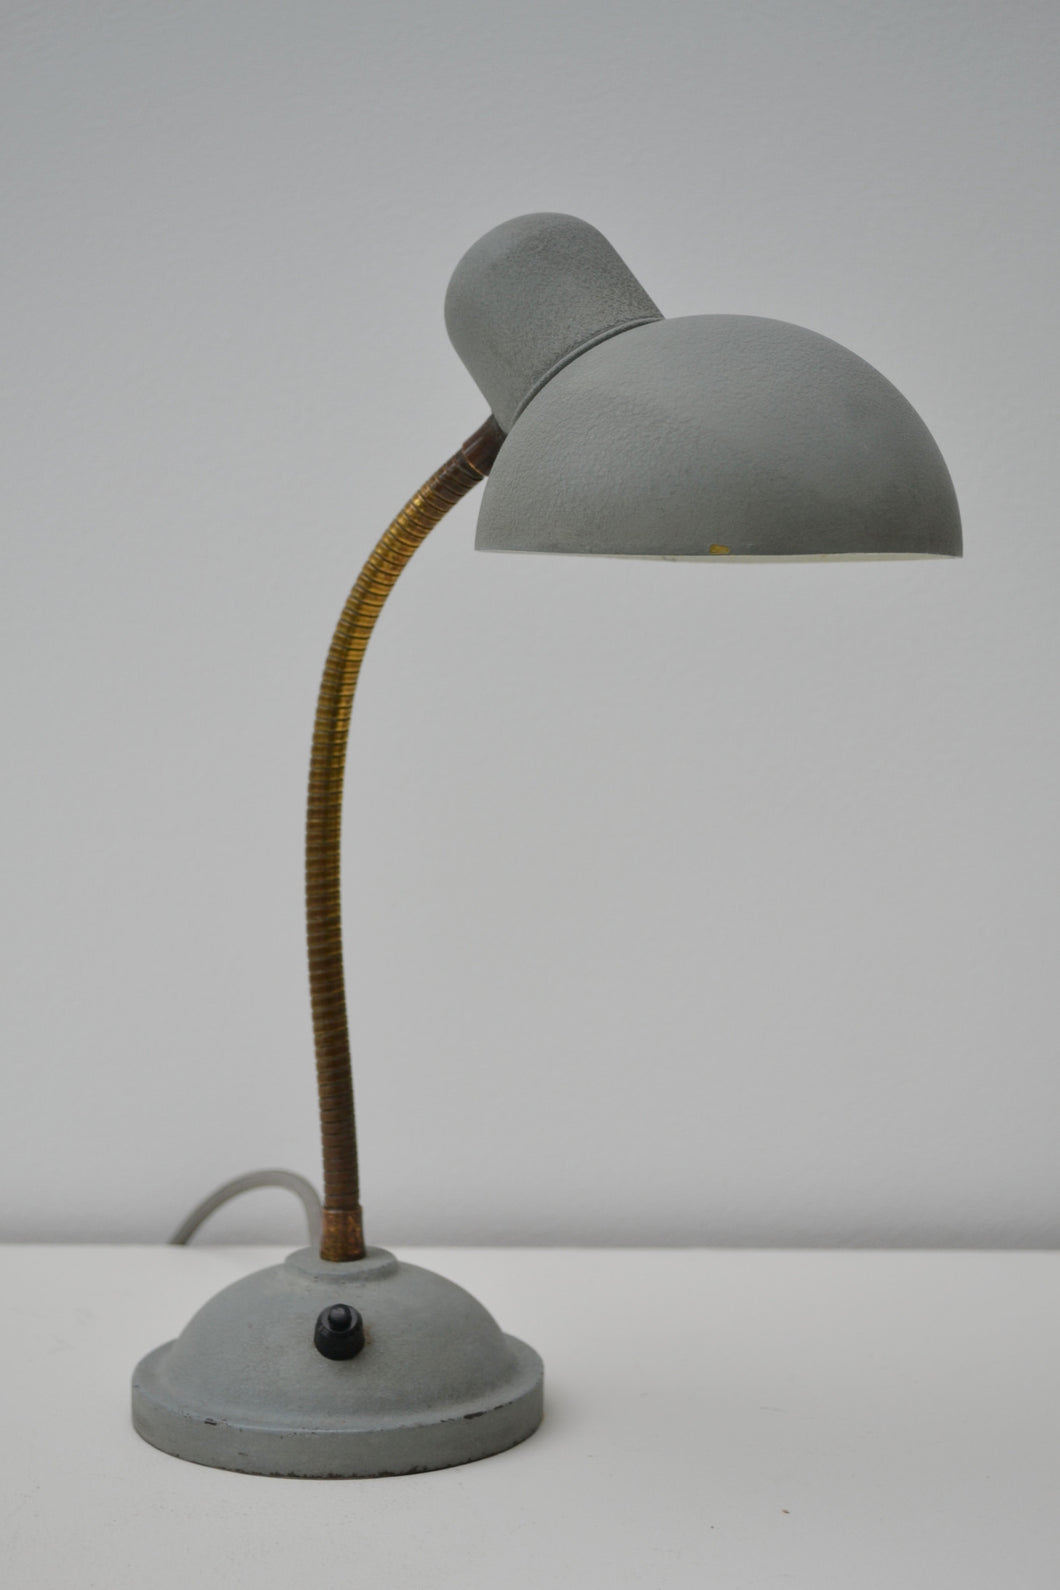 Vintage Industrial German Bauhaus Desk Lamp - SOLD OUT